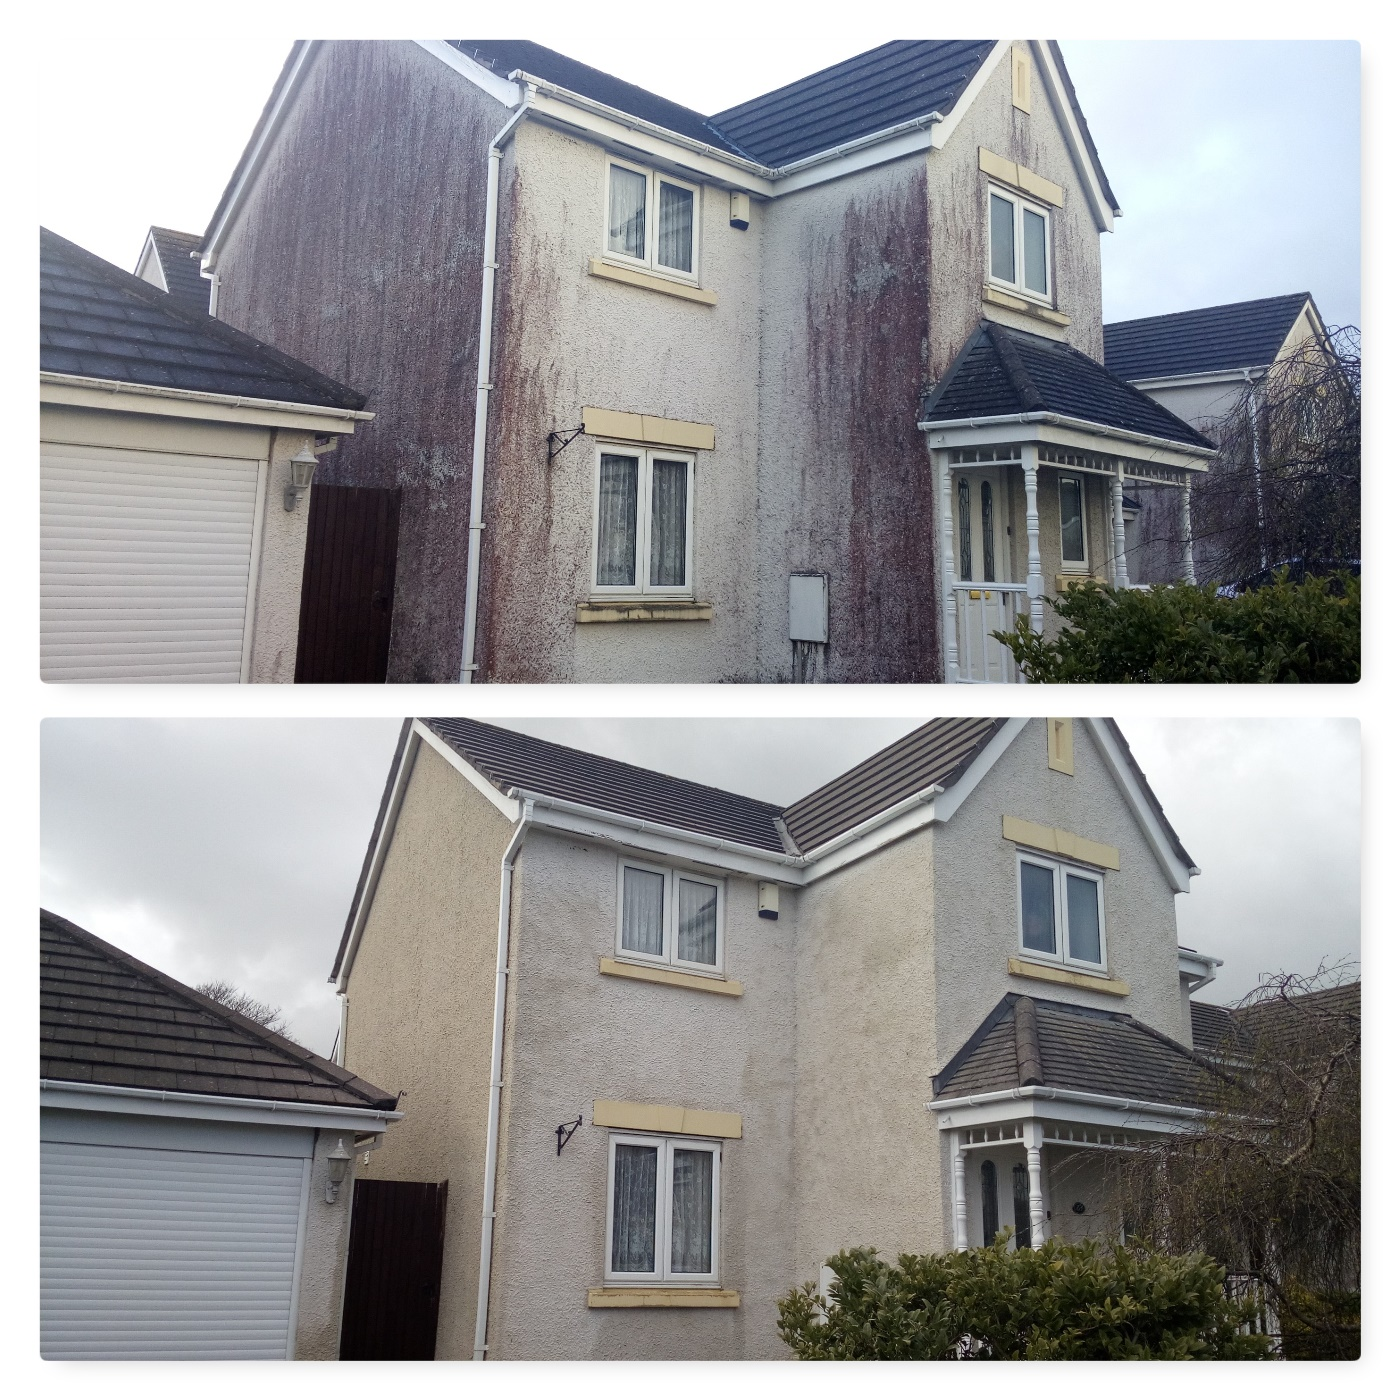 Render cleaning Buckshaw village Chorley Lancashire.